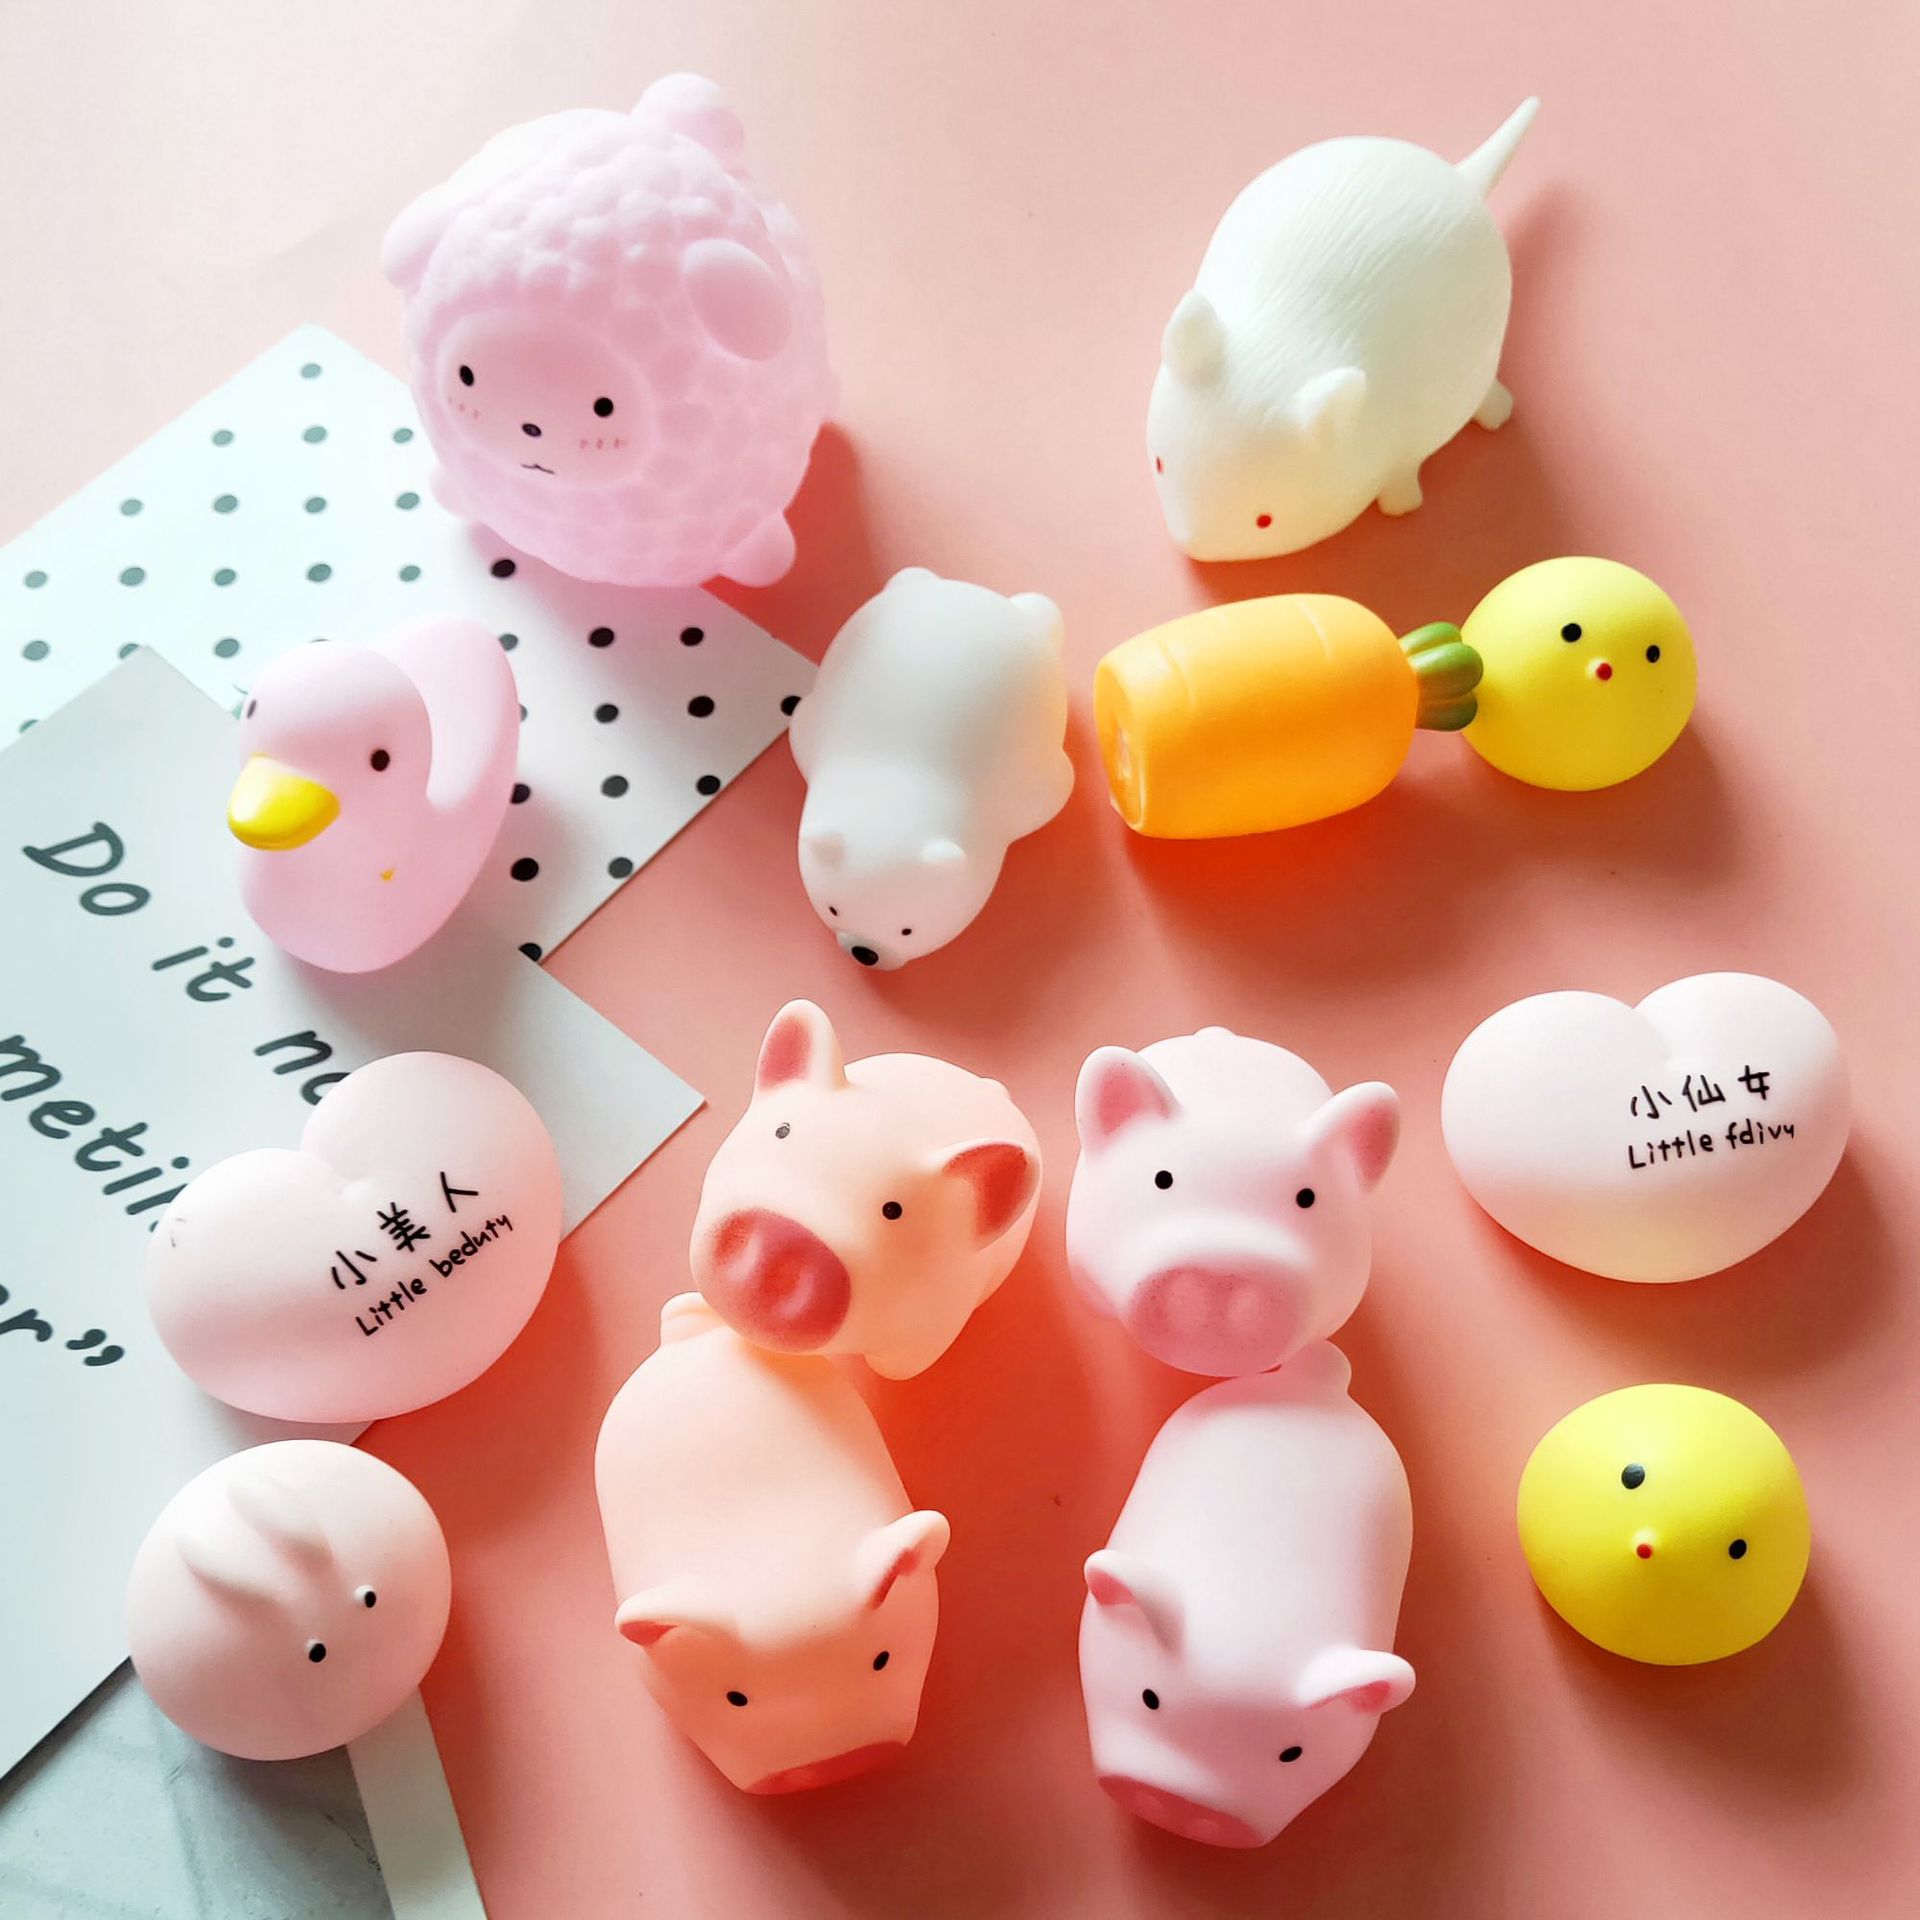 Mini Animal Toy Squeeze Mochi Rising Antistress Abreact Ball Soft Sticky Cute Funny Gift Soft Sticky Stress Relief Funny Toys